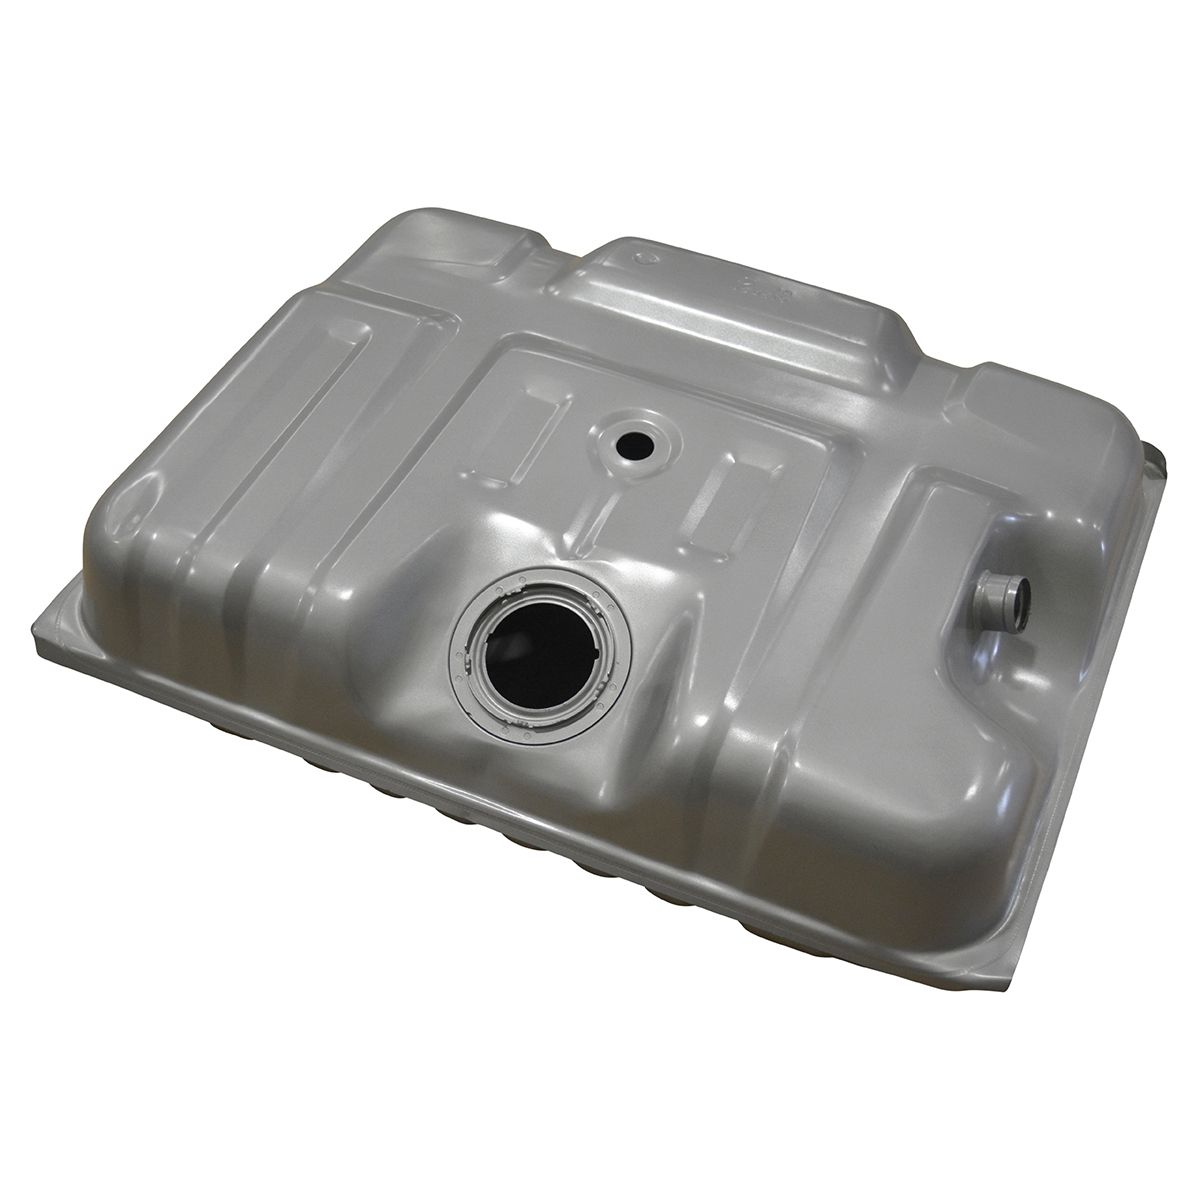 hight resolution of 18 gallon rear mount gas fuel tank for 90 96 ford f series pickup truck